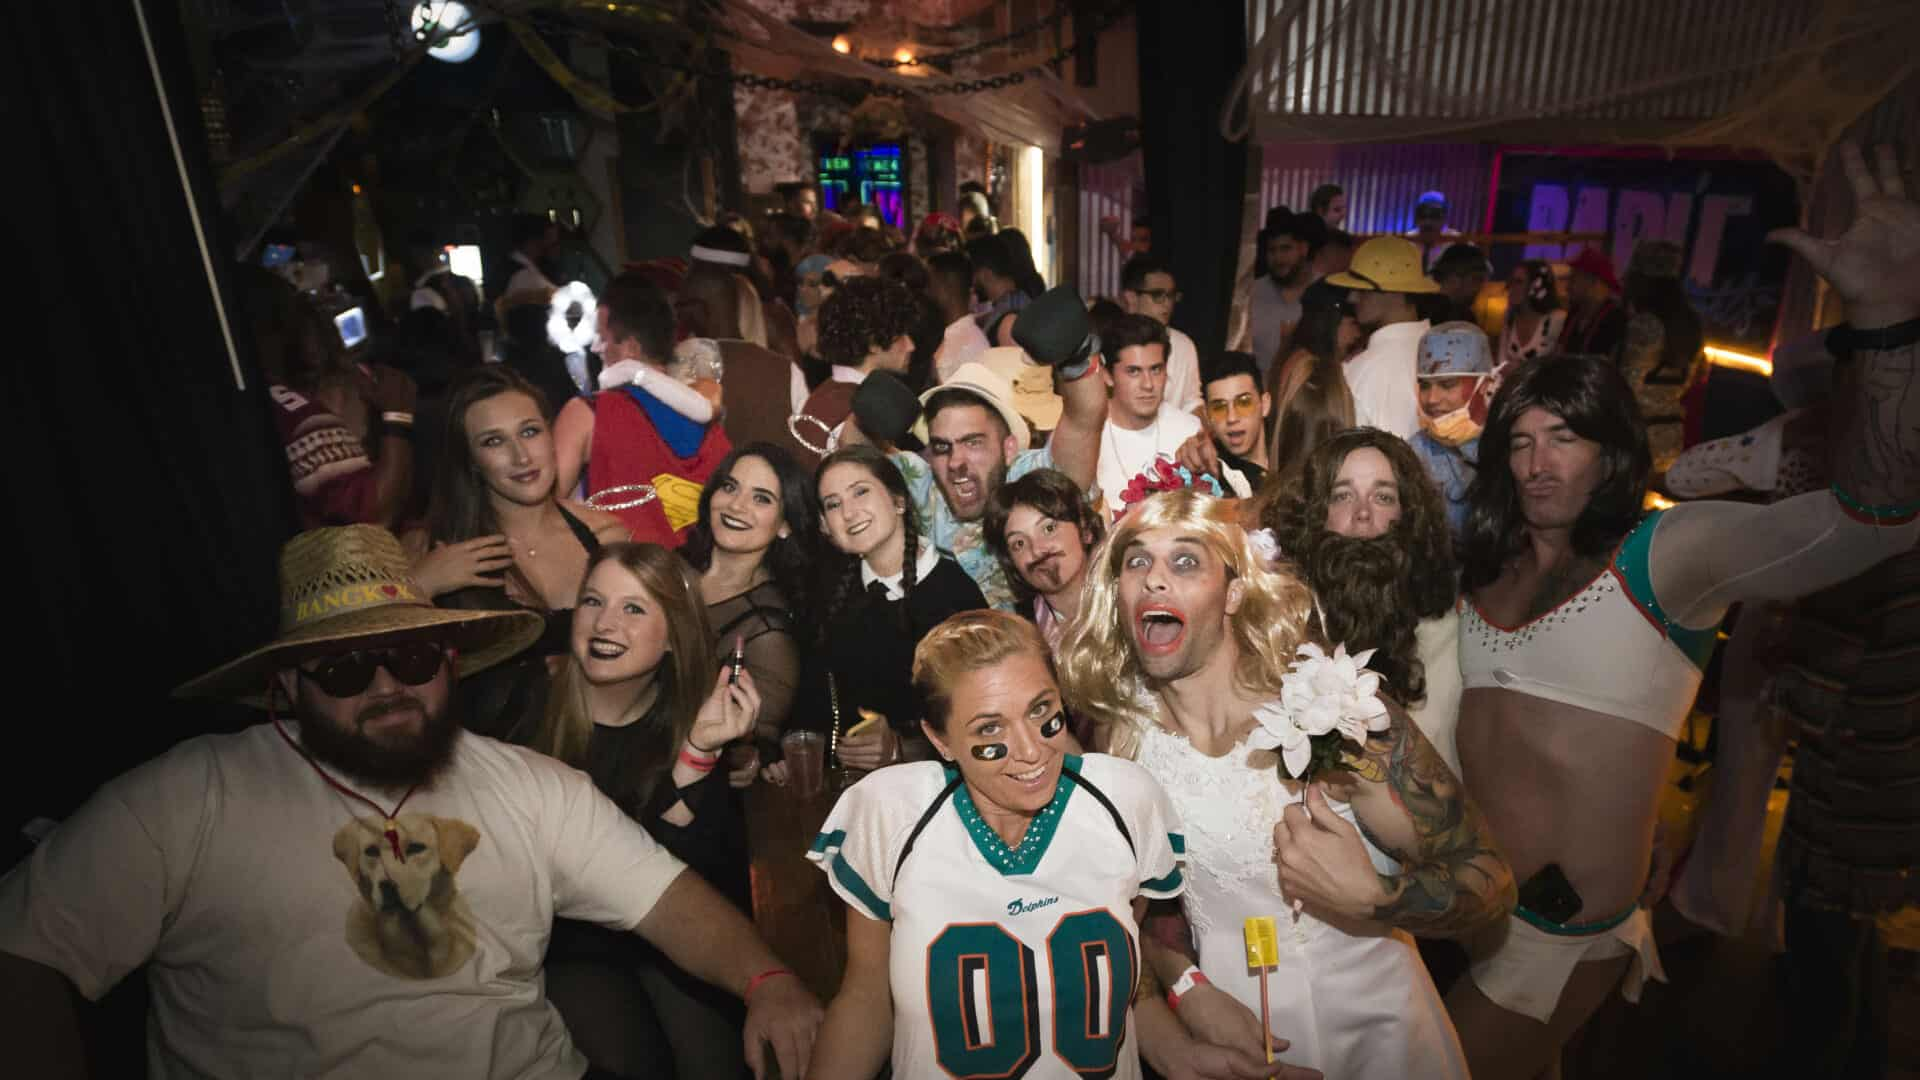 Halloween October 31st 2020 Miami Bar Crawl 10 Best Halloween Events in Brickell and Downtown Miami (October